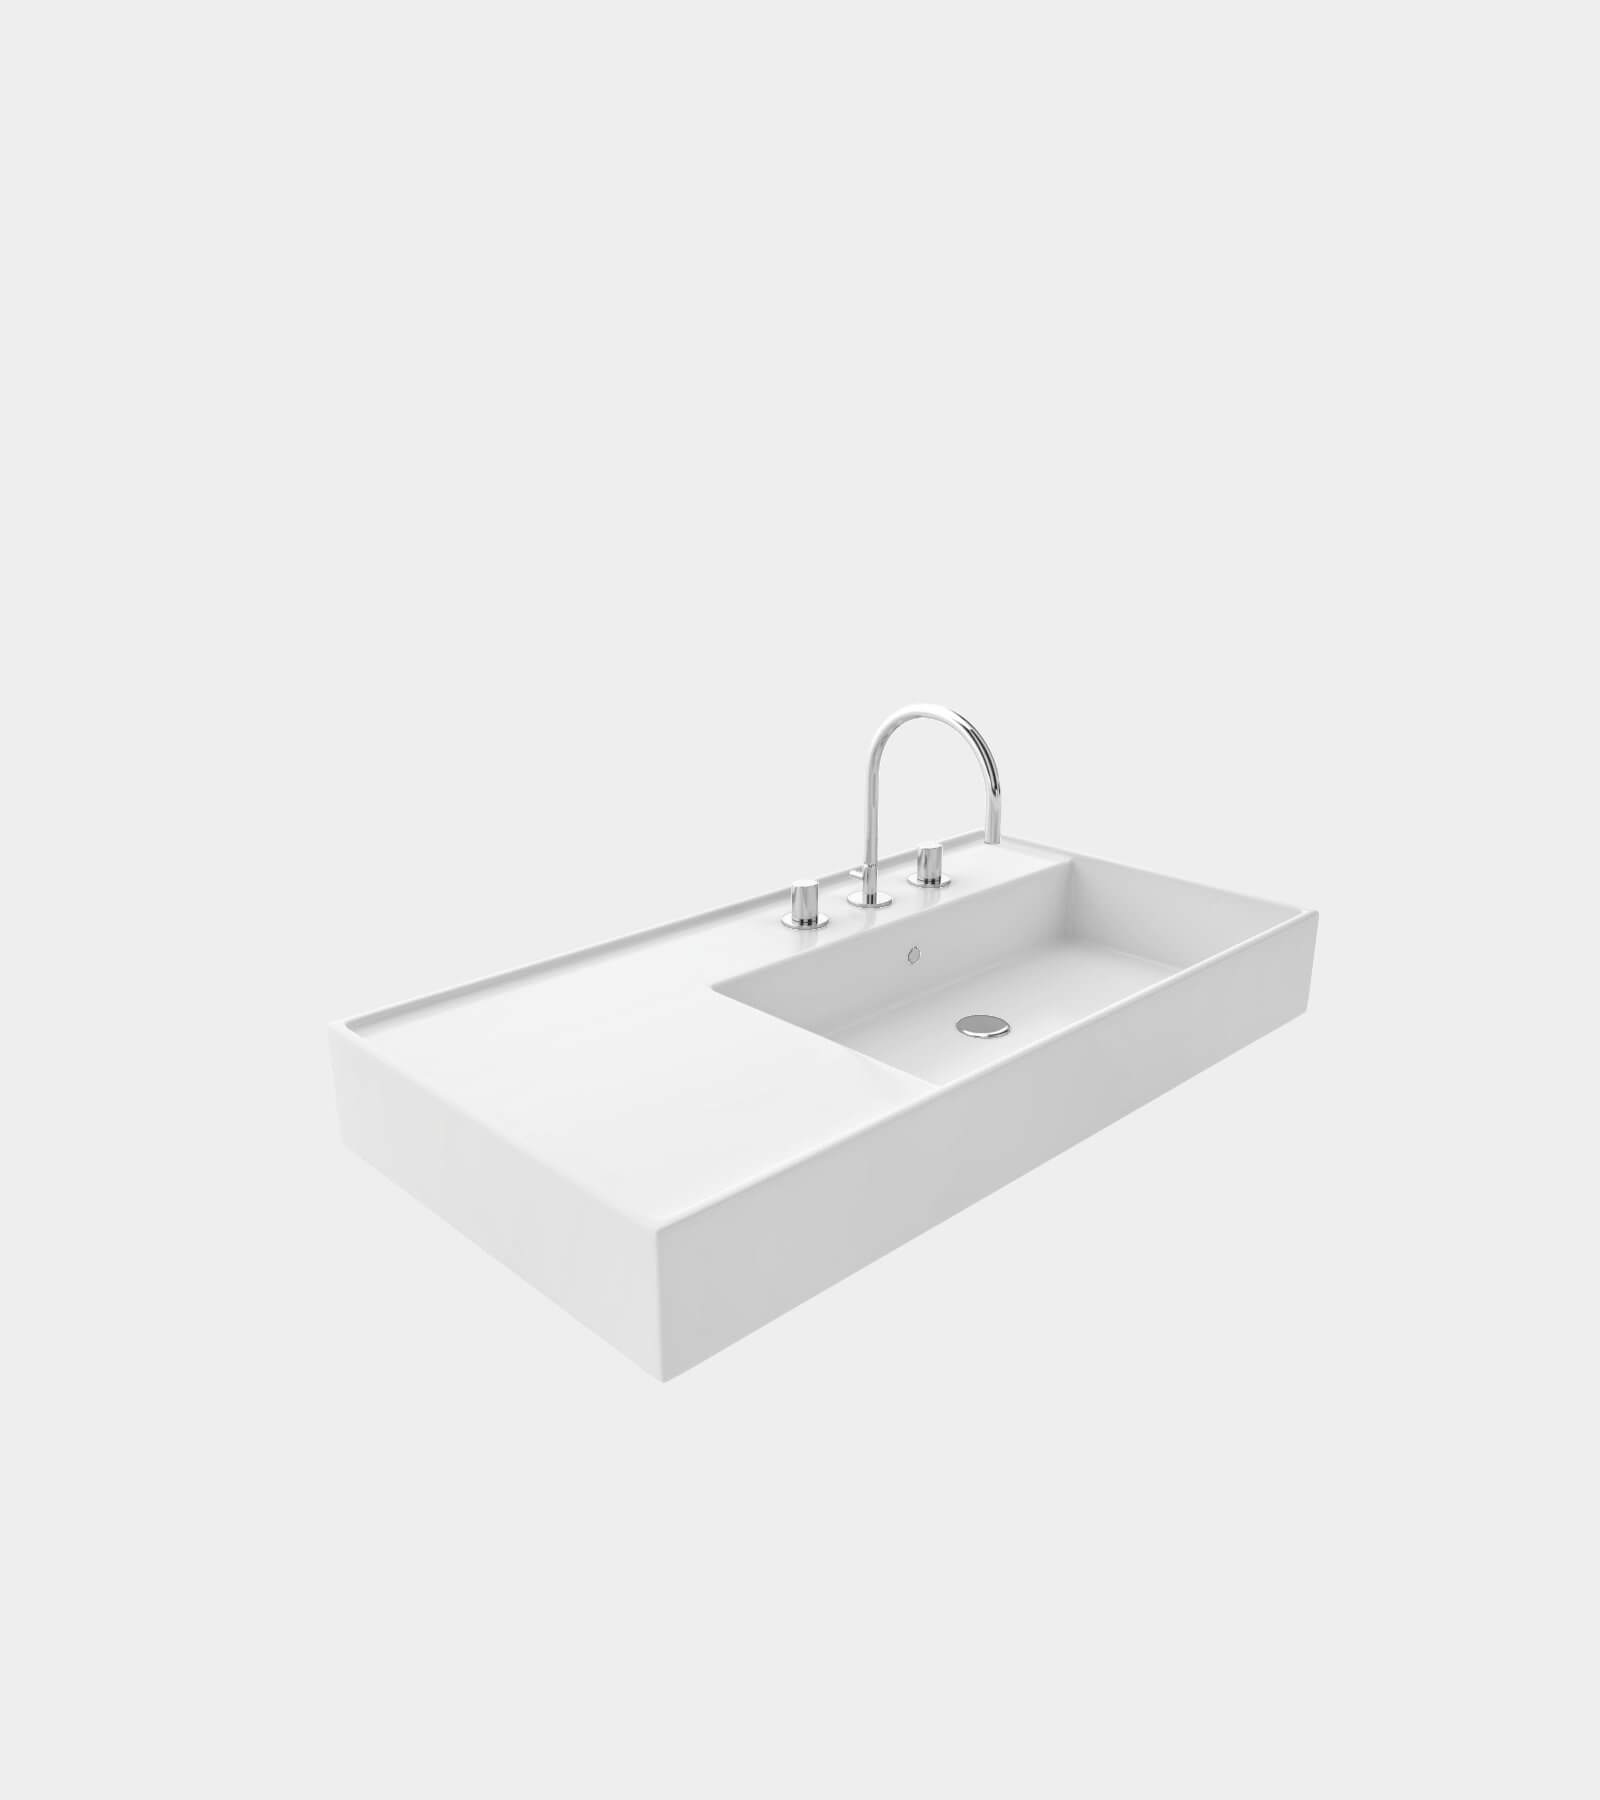 Washbasin with faucet 2- 3D Model